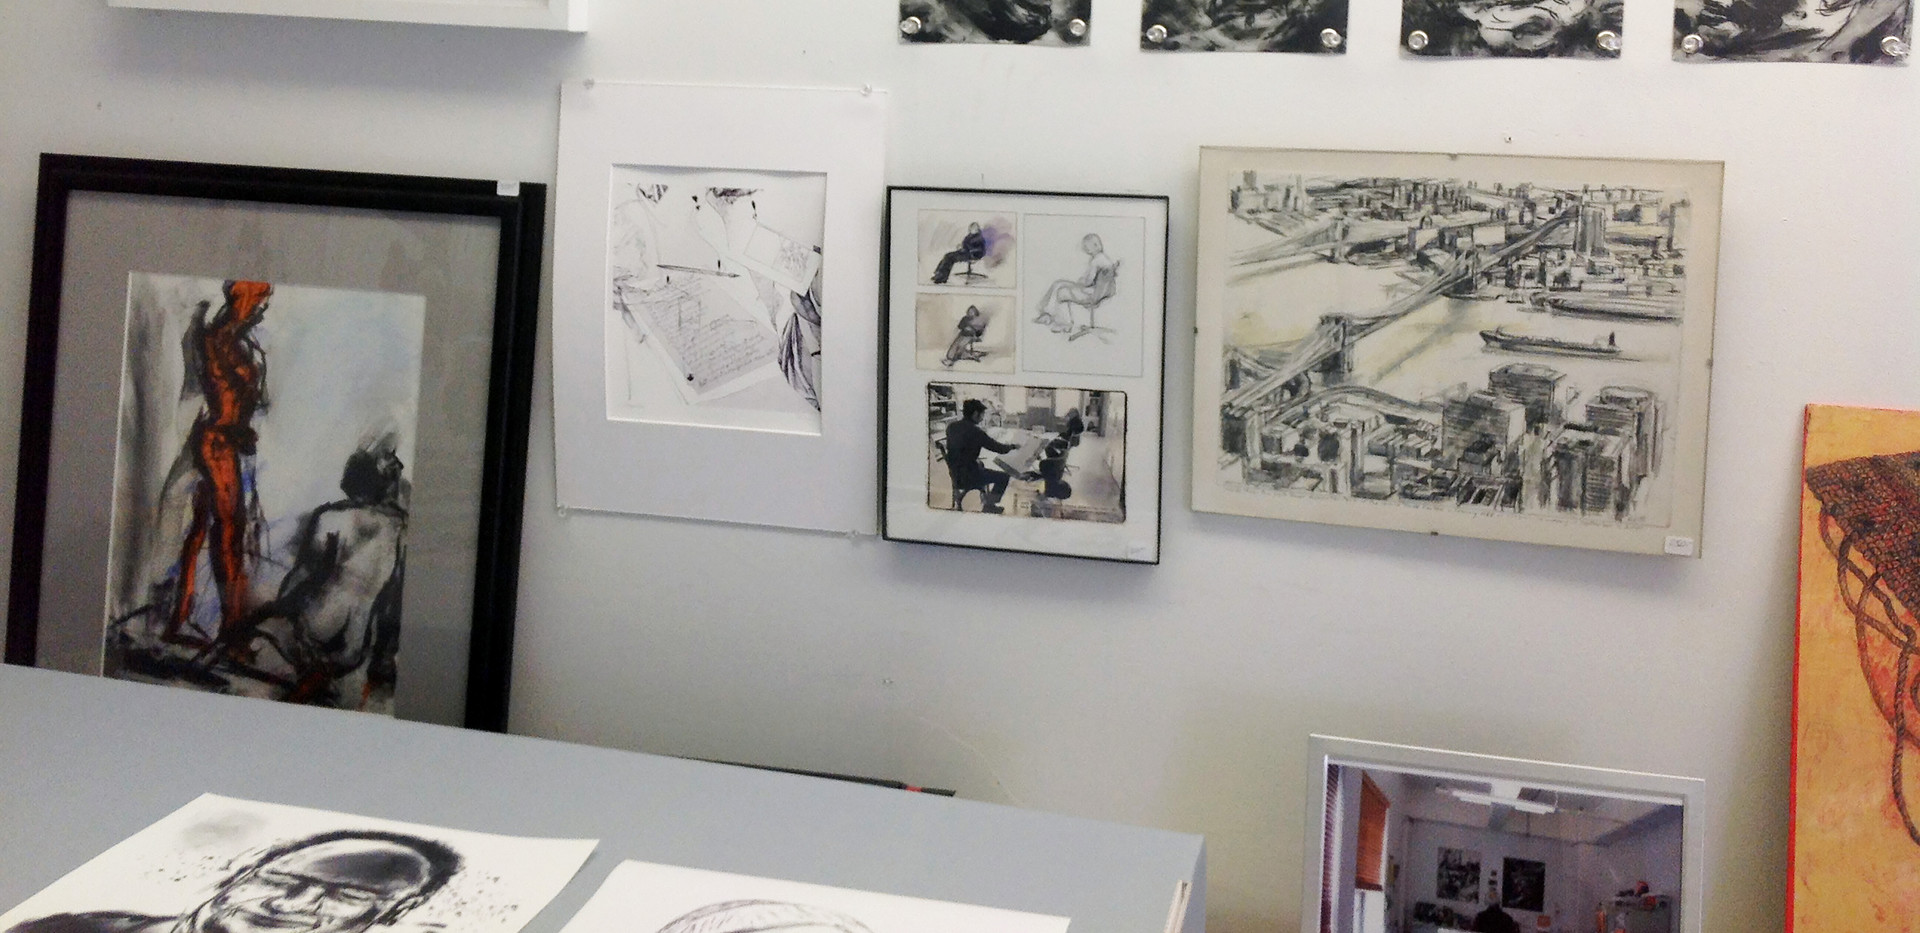 Showing space bench w. drawings